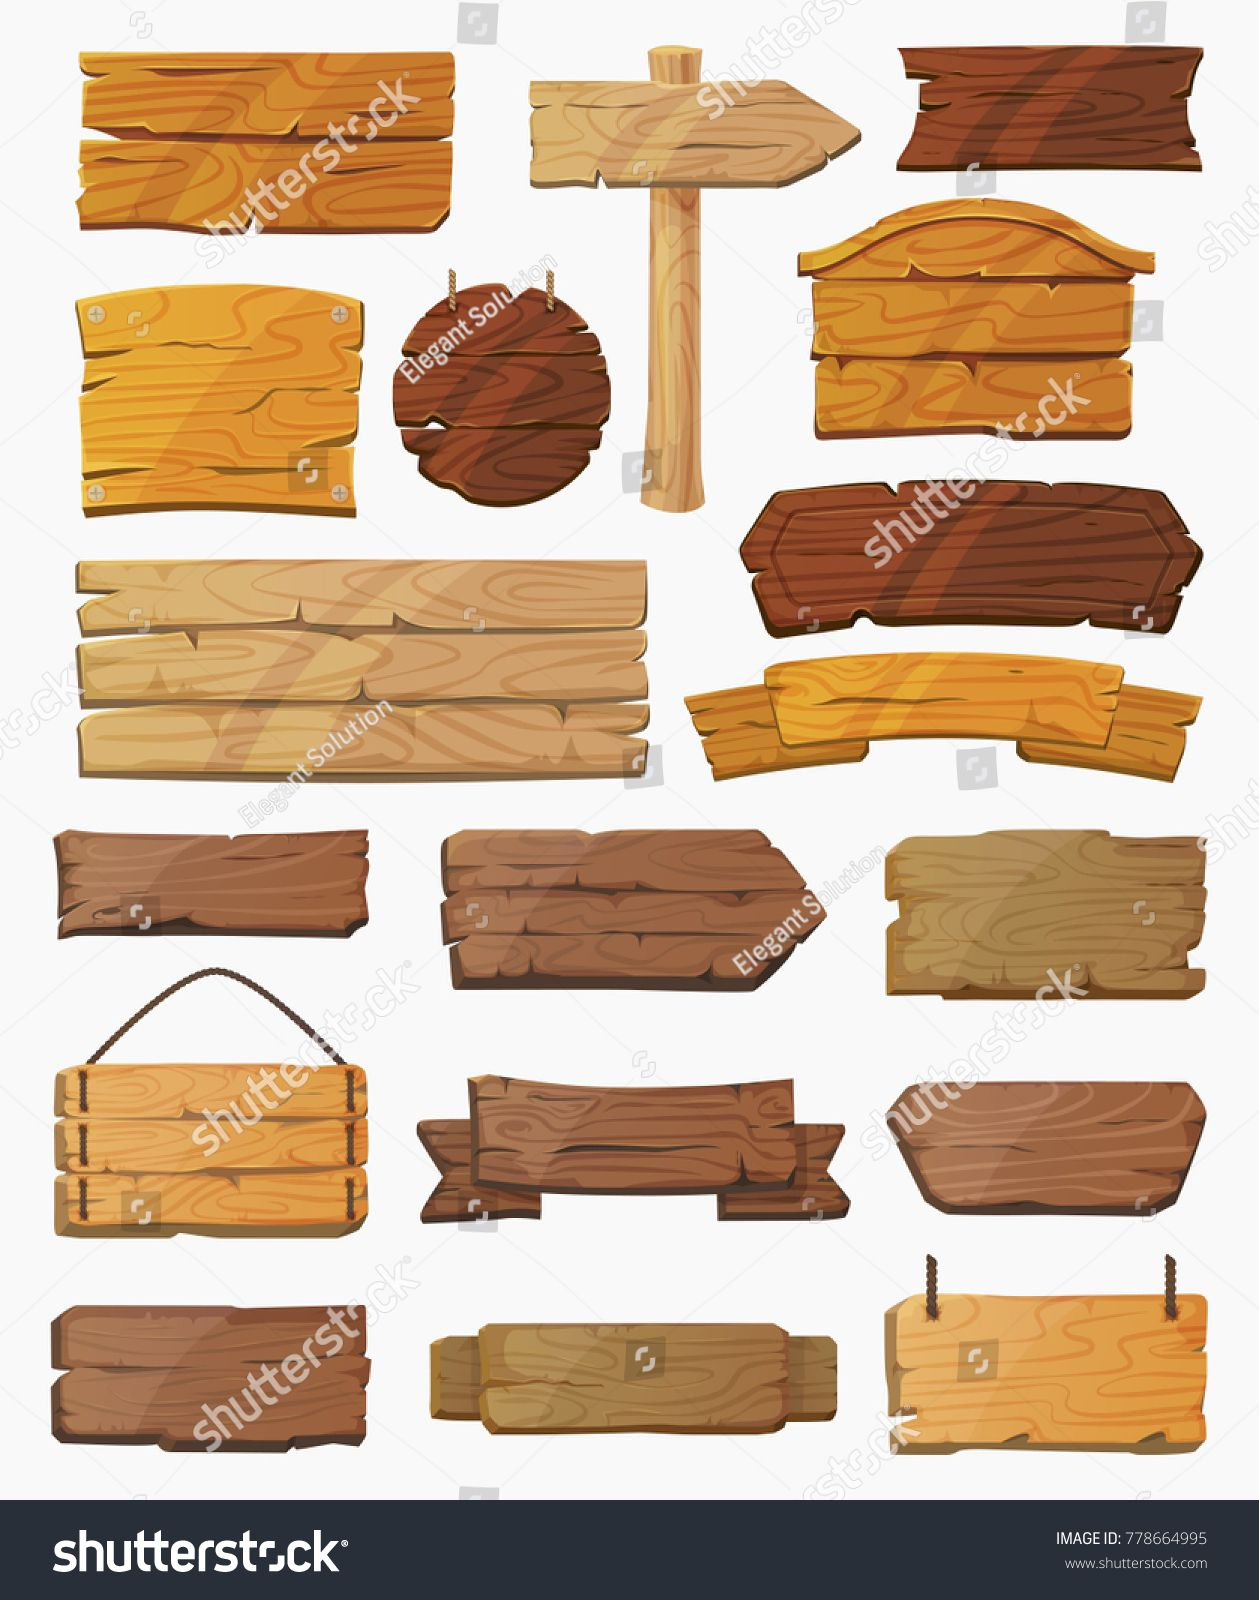 Blank Or Empty Clear Isolated Wooden Planks Or Signboards Set Of Vintage Or Old Retro Banners With Nails Signs For Messages Or P Wooden Planks Wooden Plank